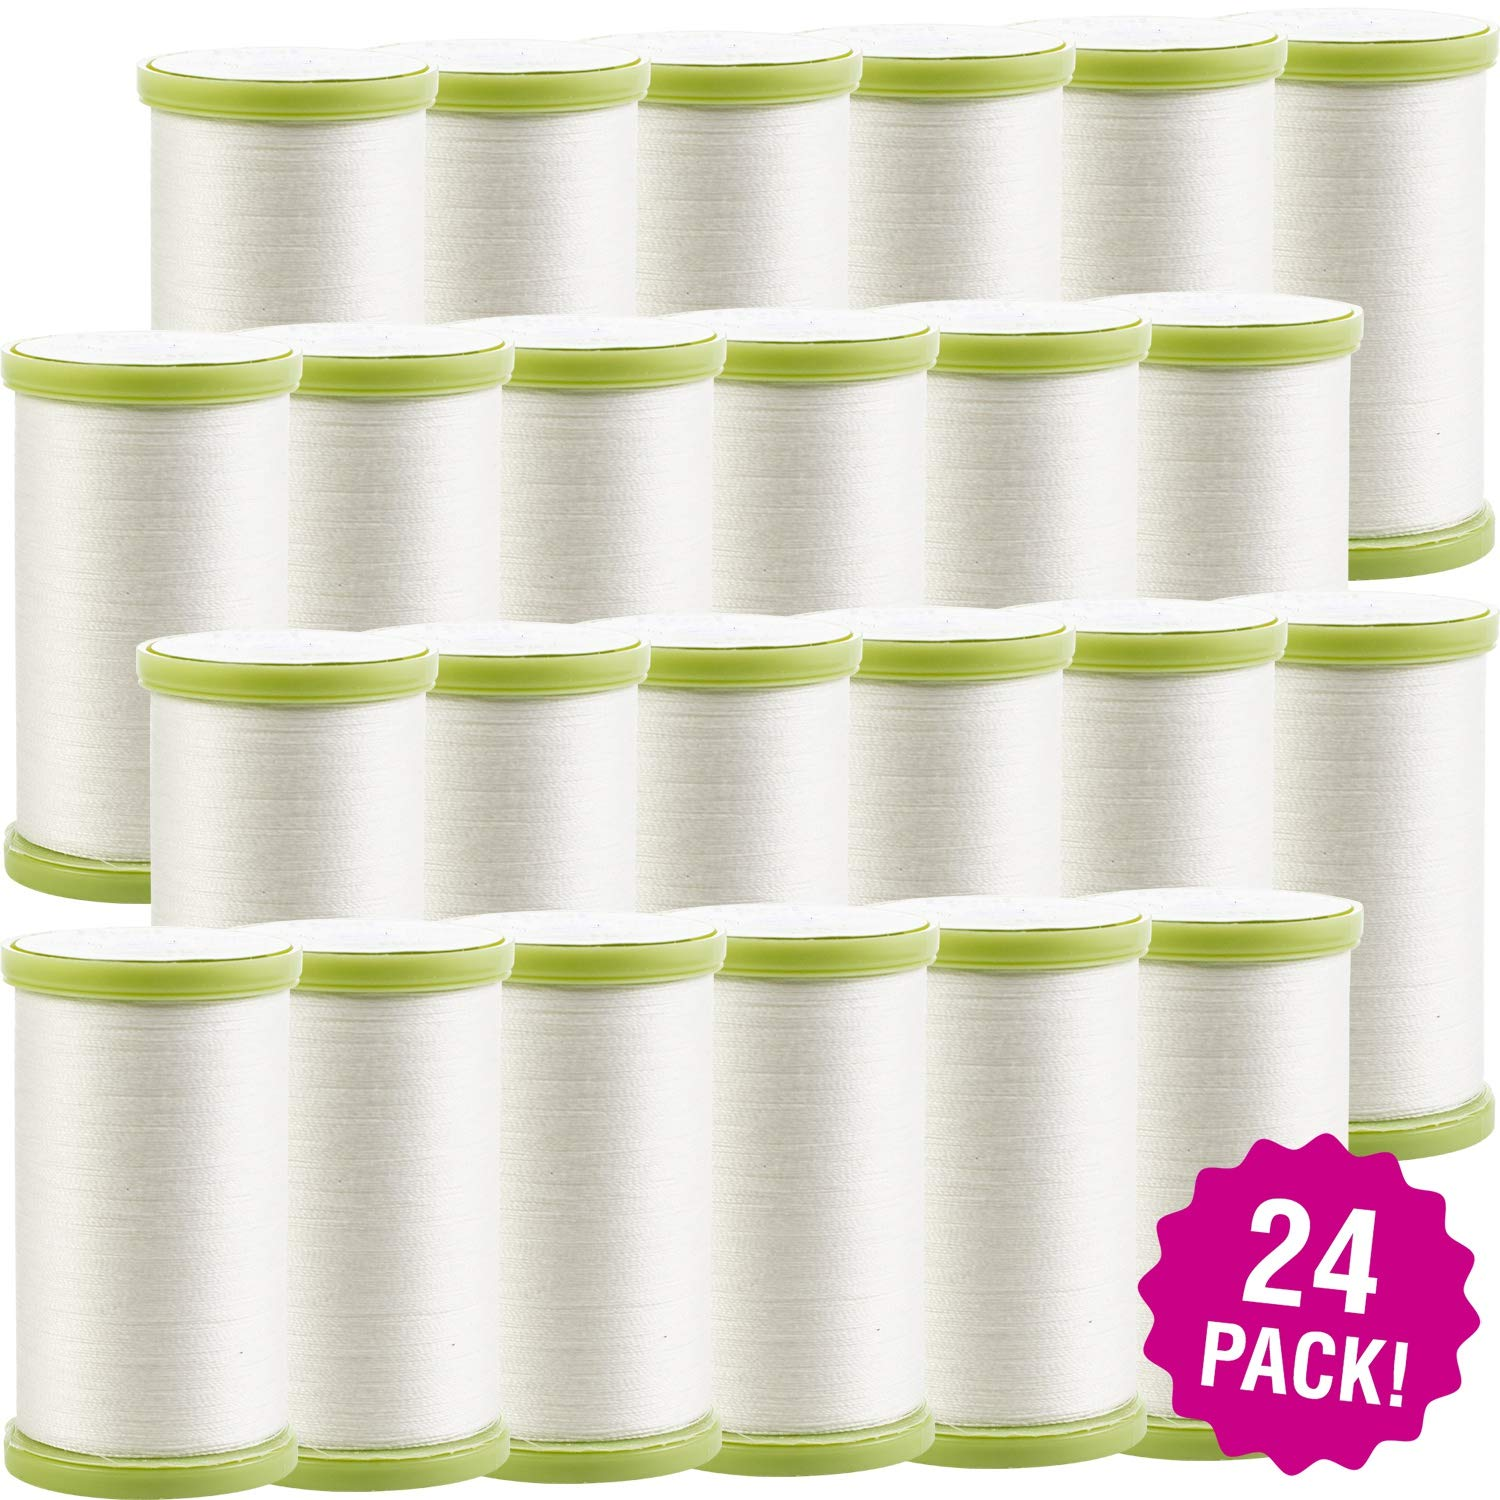 Coats 96956 Dual Duty Plus Hand Quilting Thread 325yd-24/Pk-White, White 24 Pack by Coats